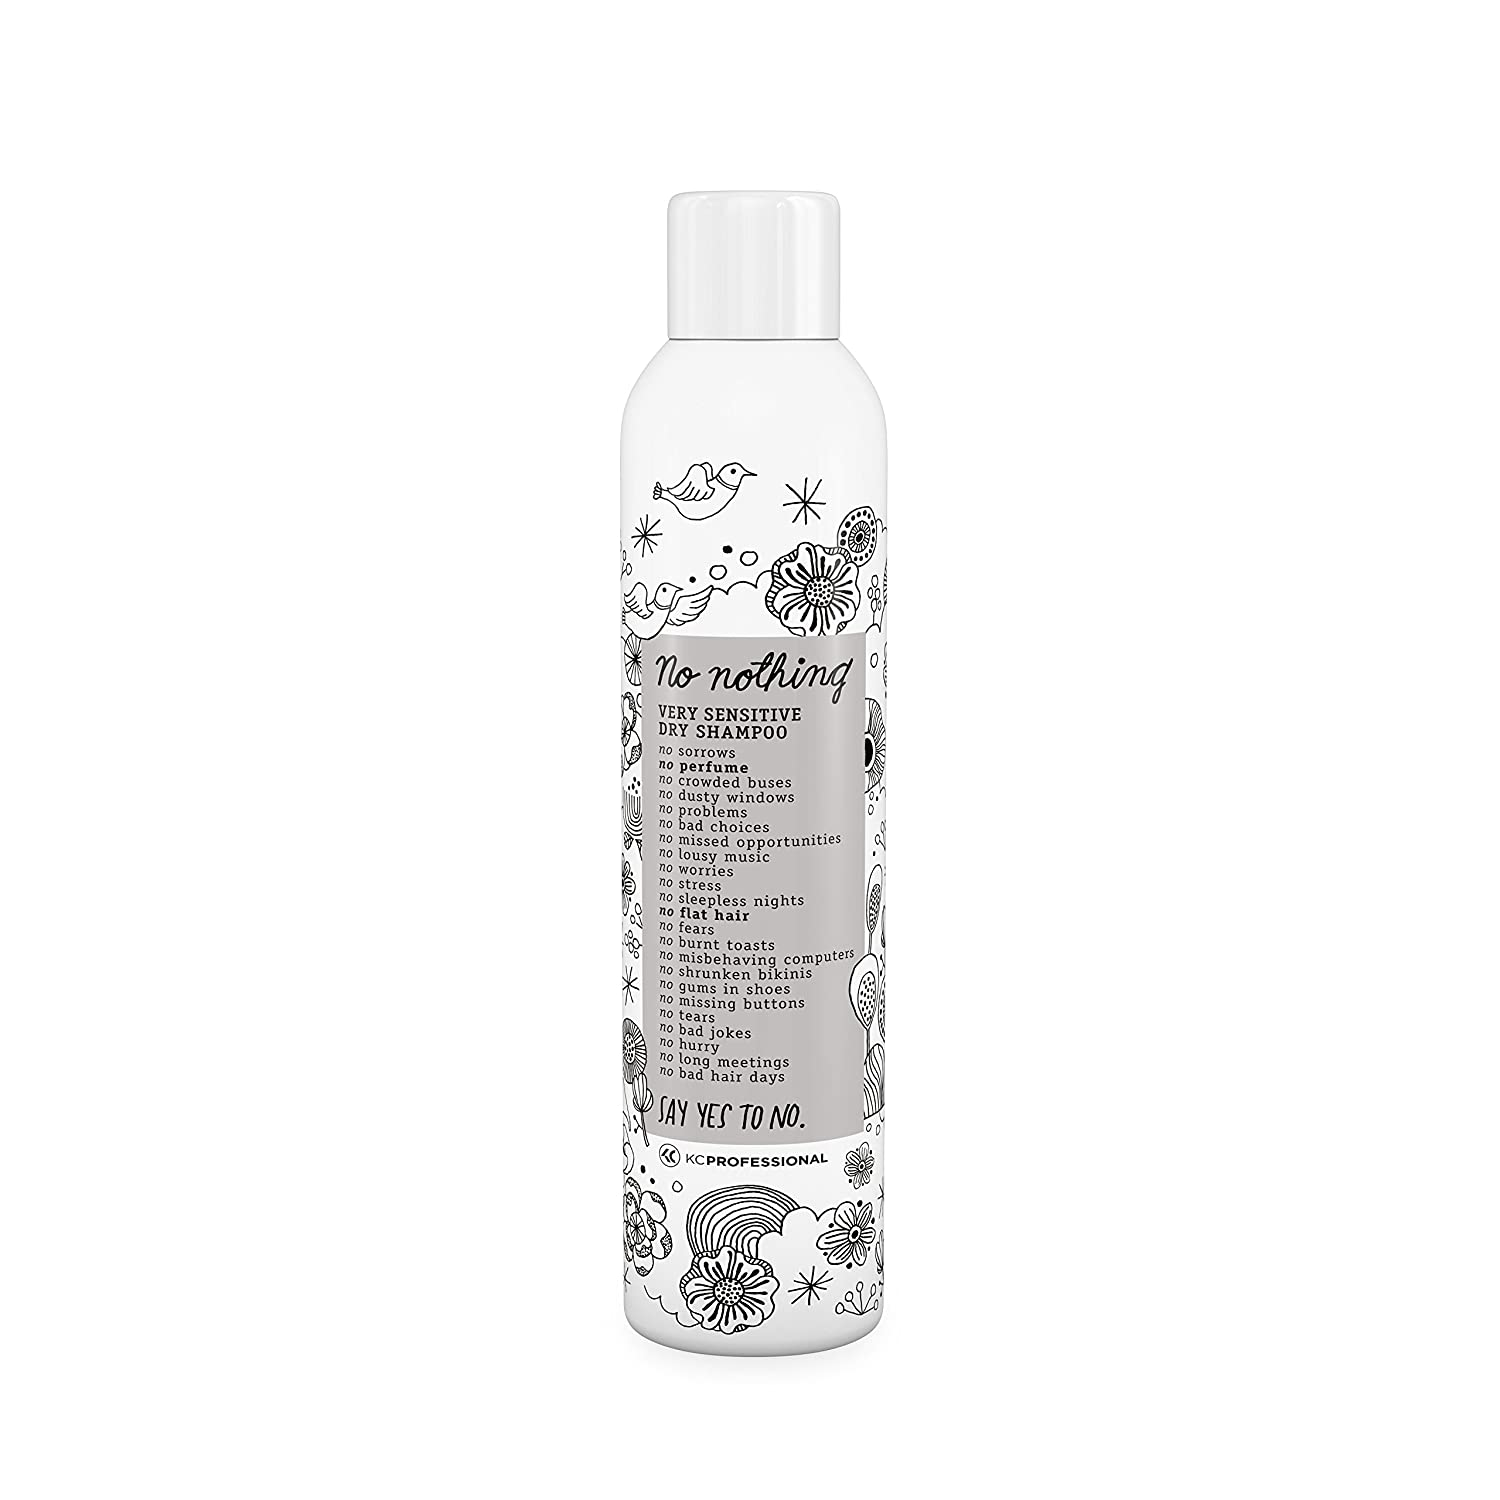 No nothing Very Sensitive Dry Shampoo - Fragrance Free Dry Shampoo, 100% Vegan, Hypoallergenic, Unscented, Gluten Free, Soy Free, 6.76 oz